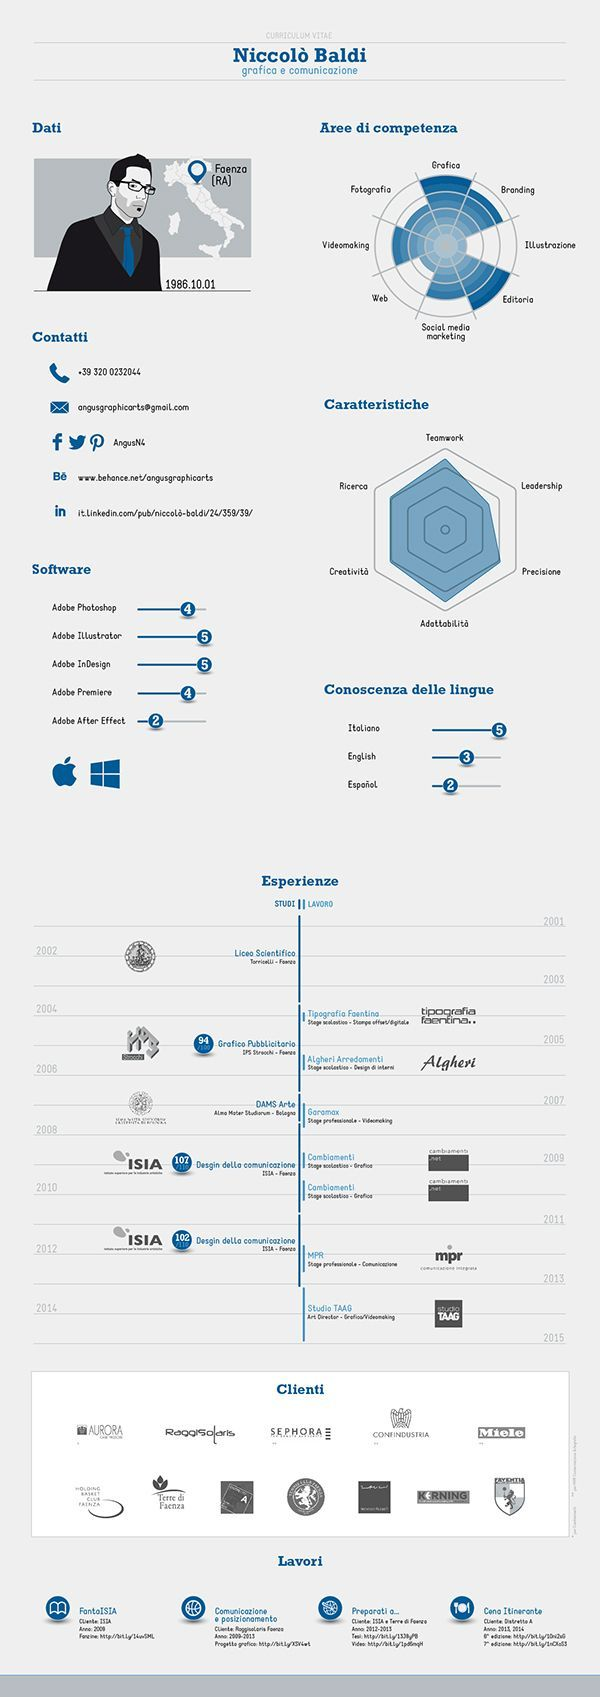 User Experience Designer Resume Infographic  Curriculum Vitae On Behanceif You Like Ux Design .